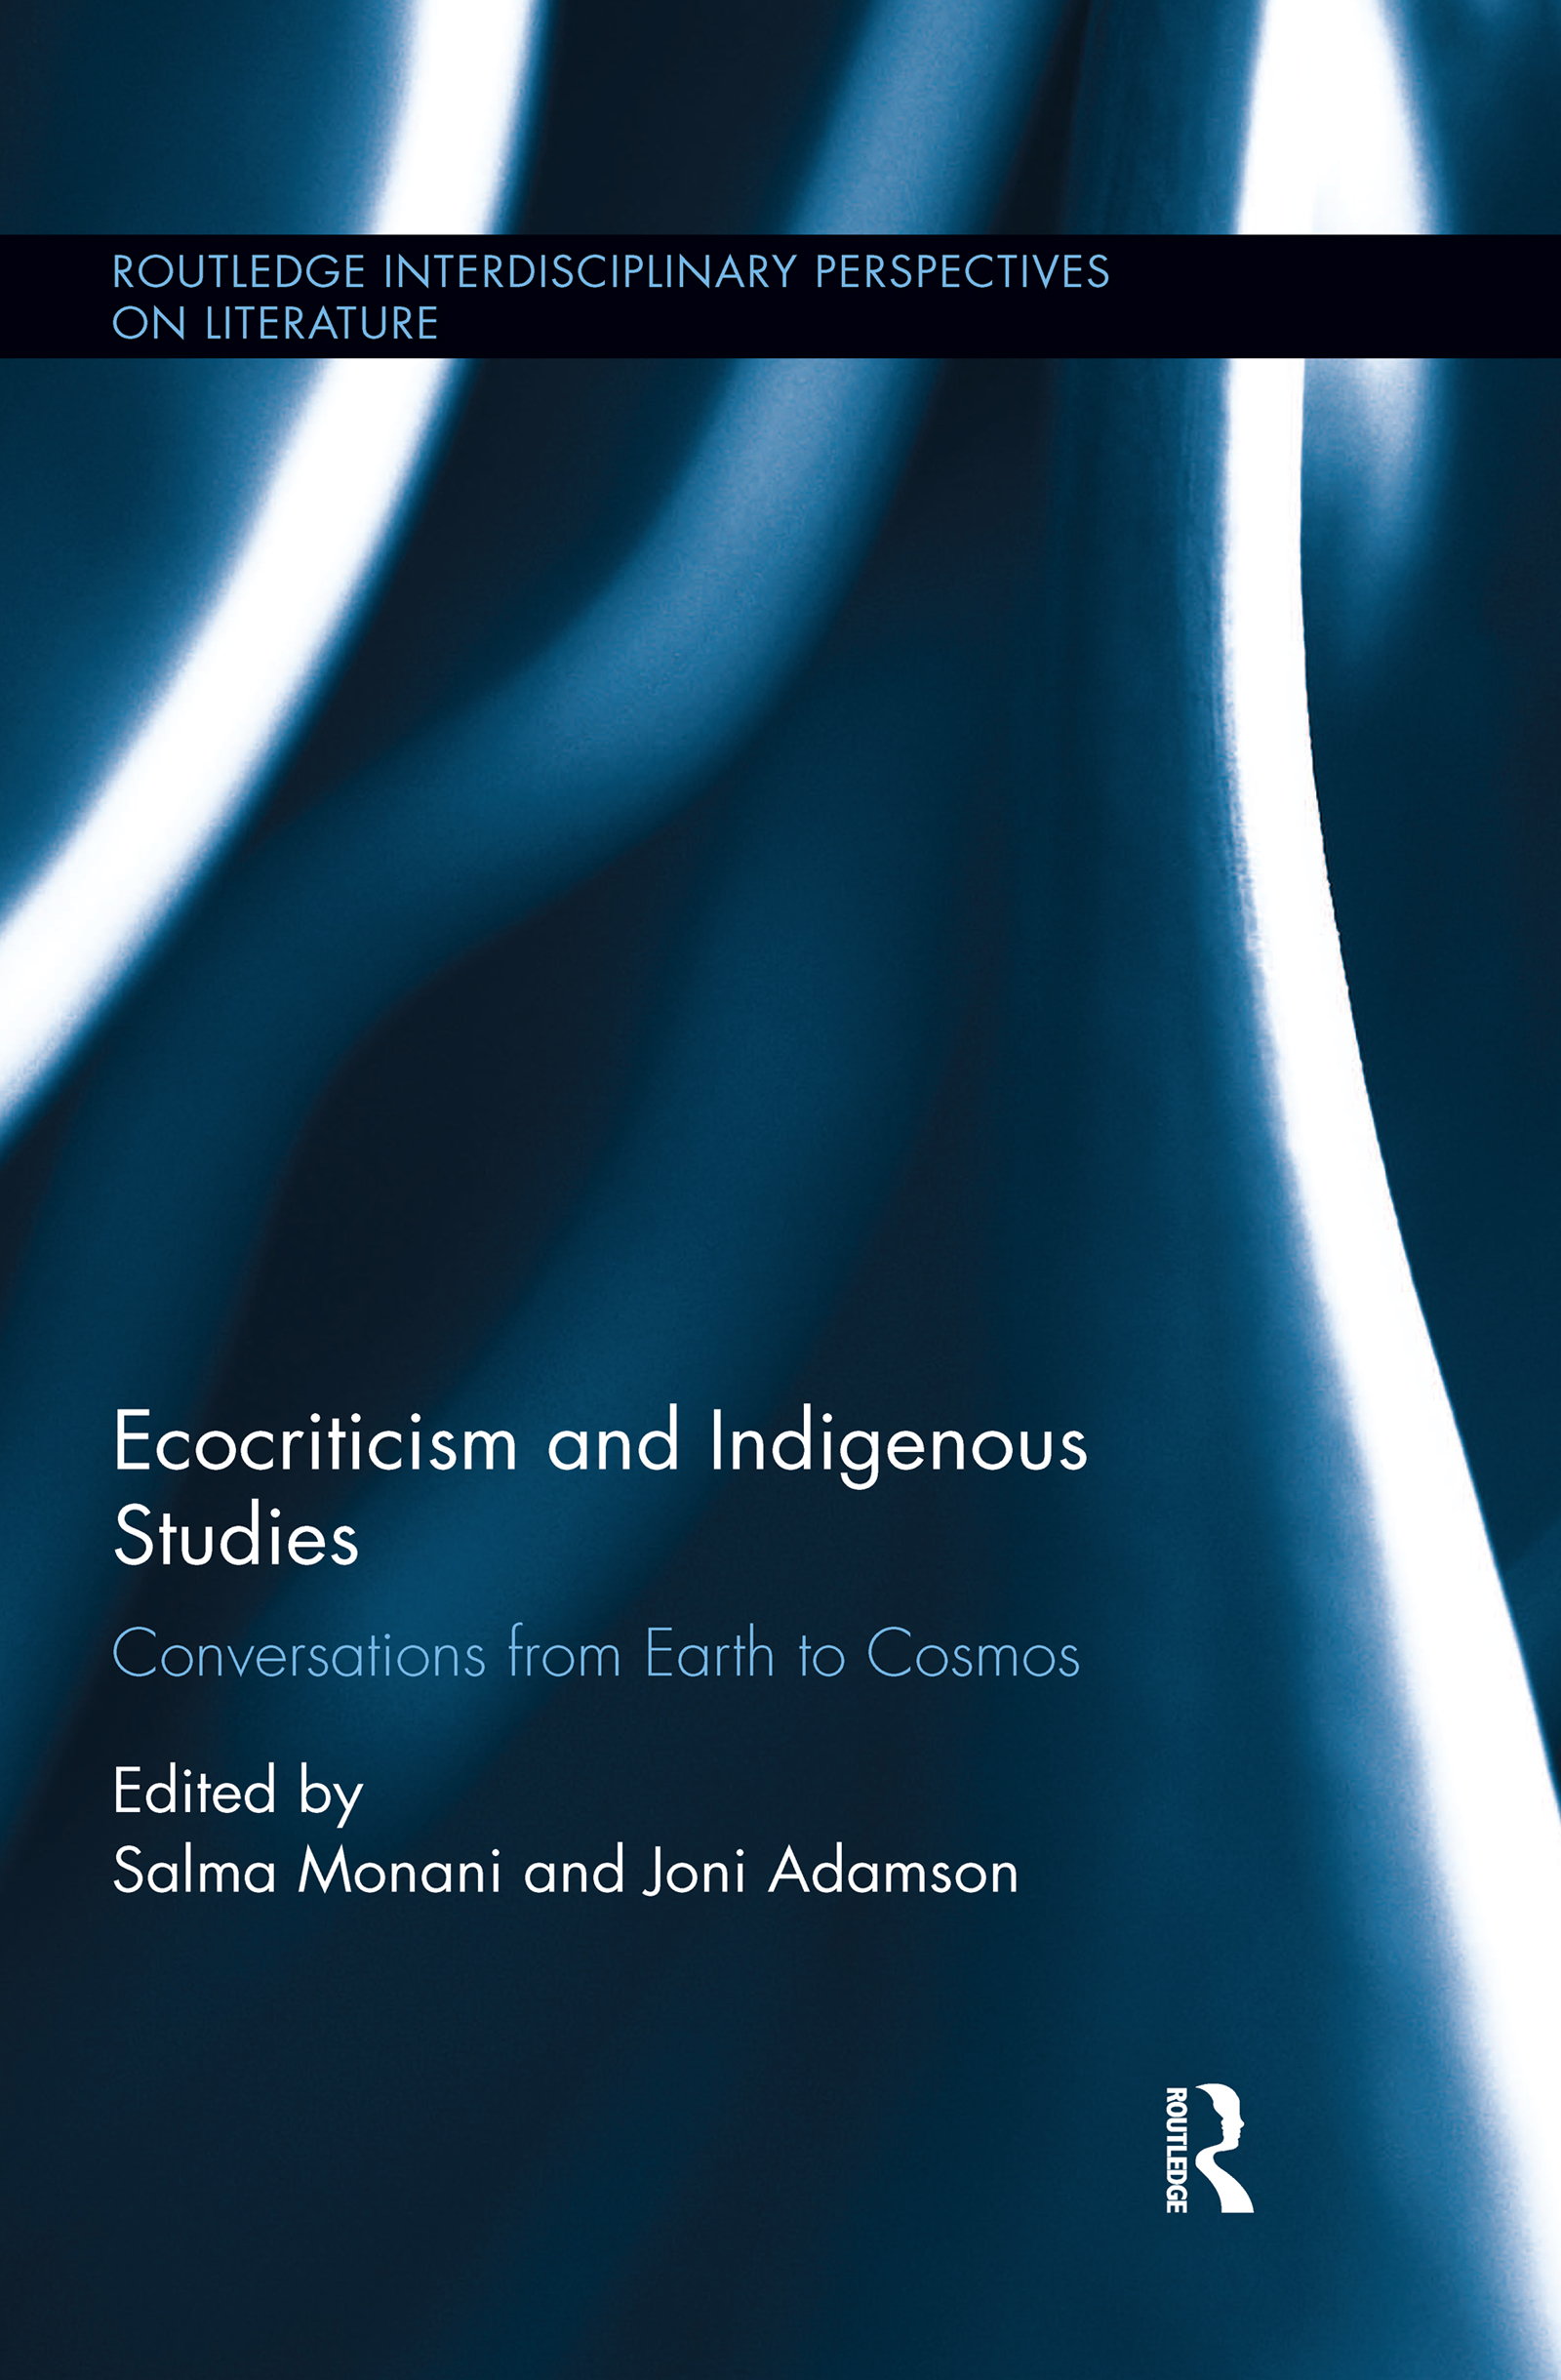 Ecocriticism and Indigenous Studies